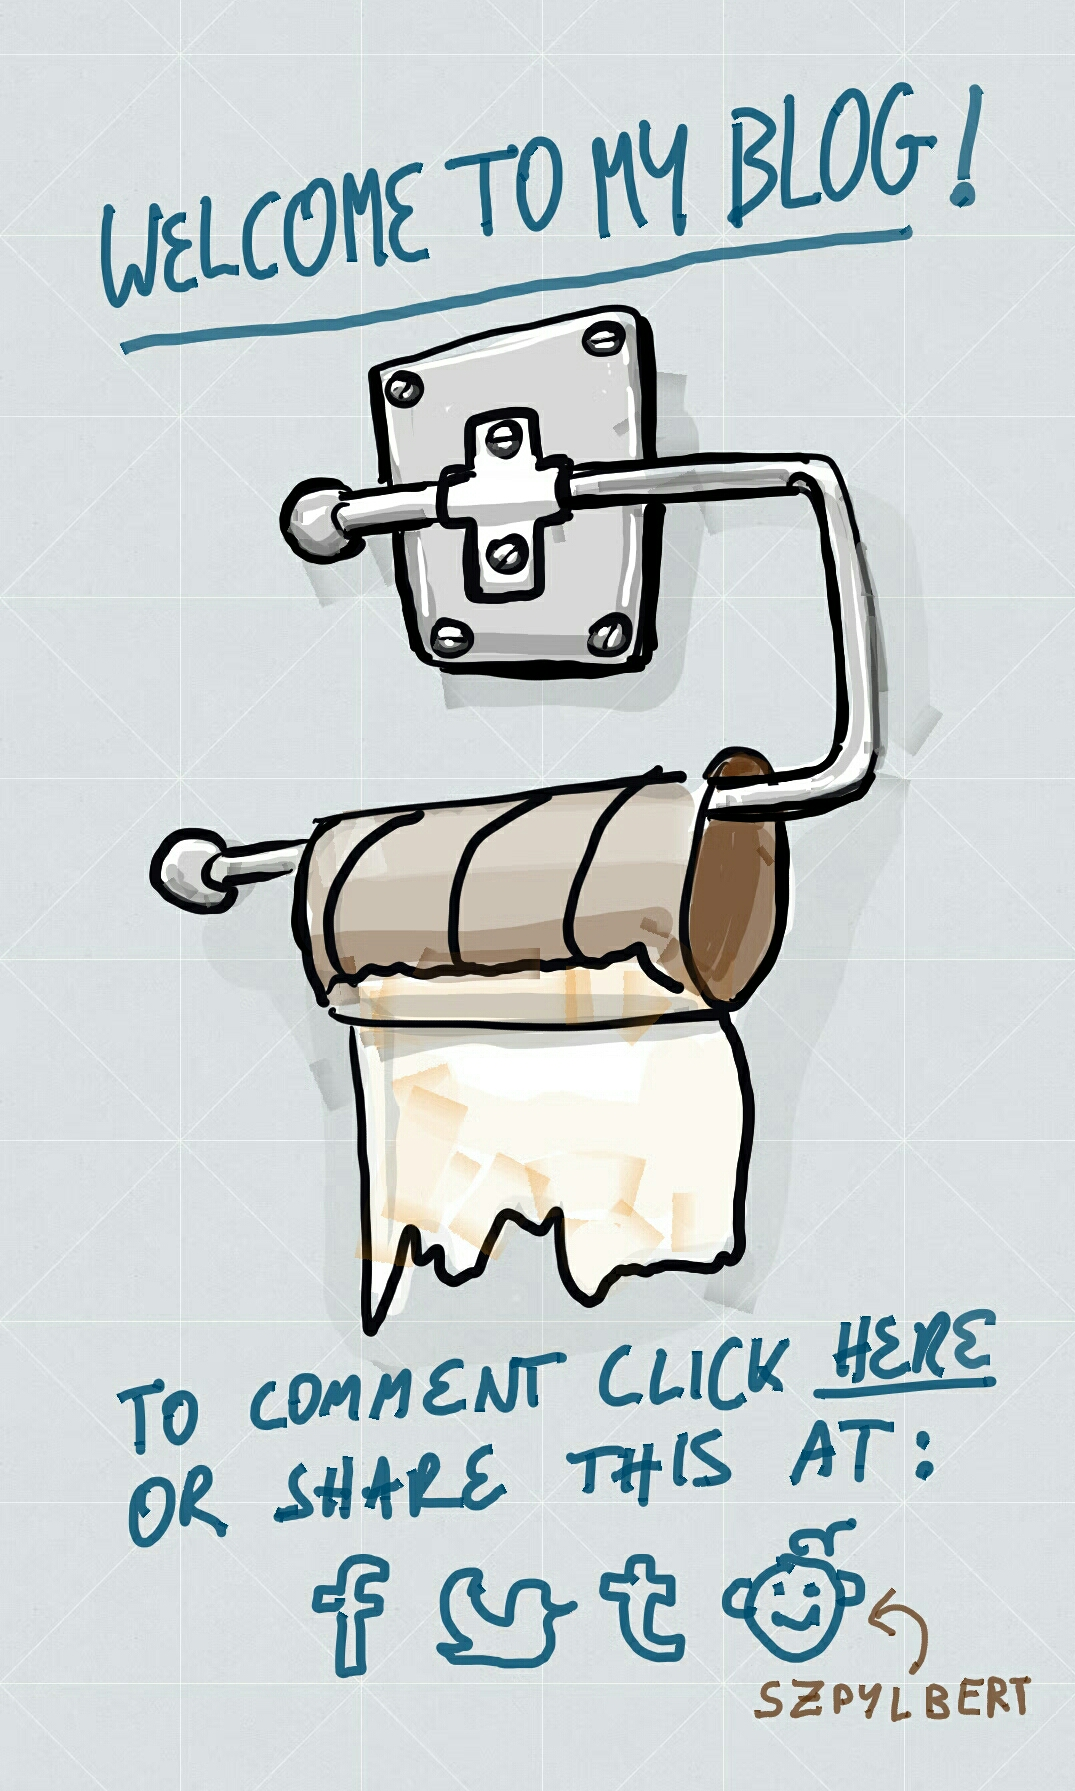 Szpylbert cartoon about blogs and toilet walls